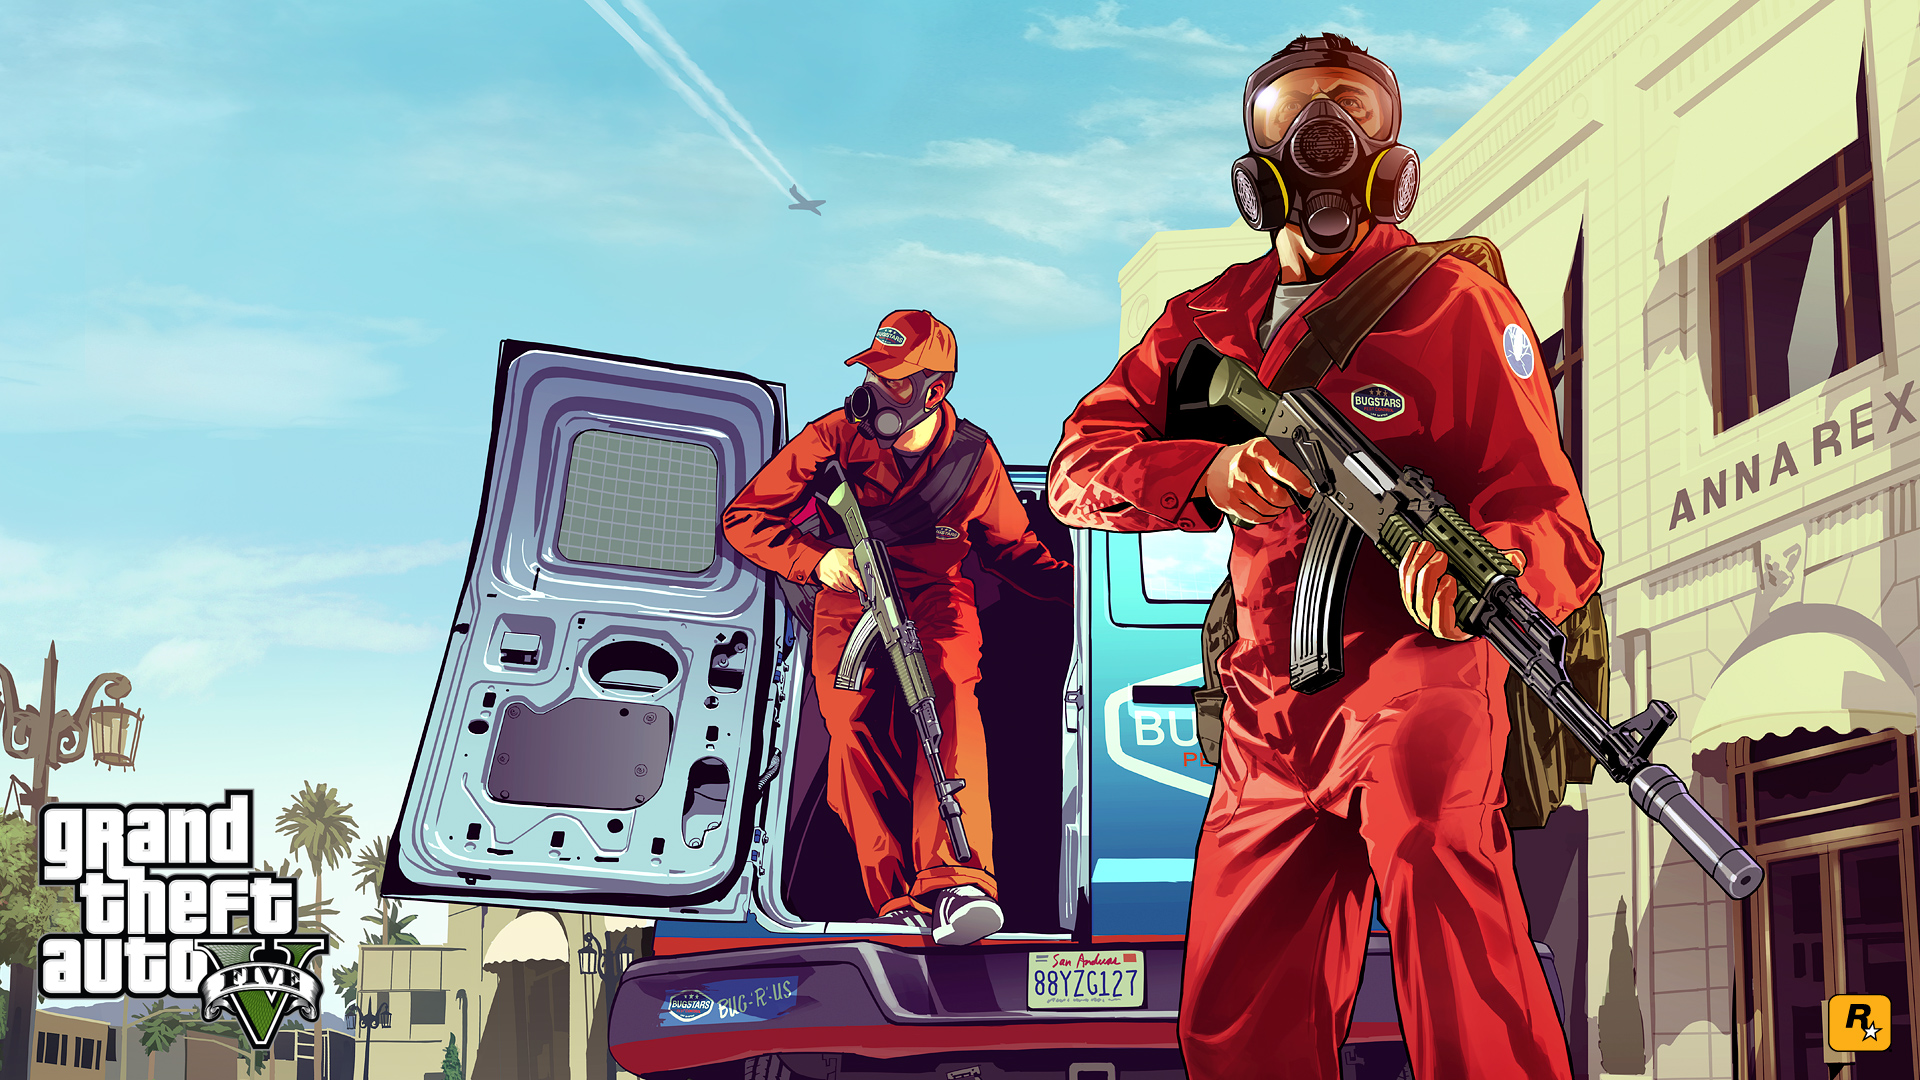 Wallpapers GTA V en artwork gta 5 wallpaper artwork hd 1080p 1920x1080